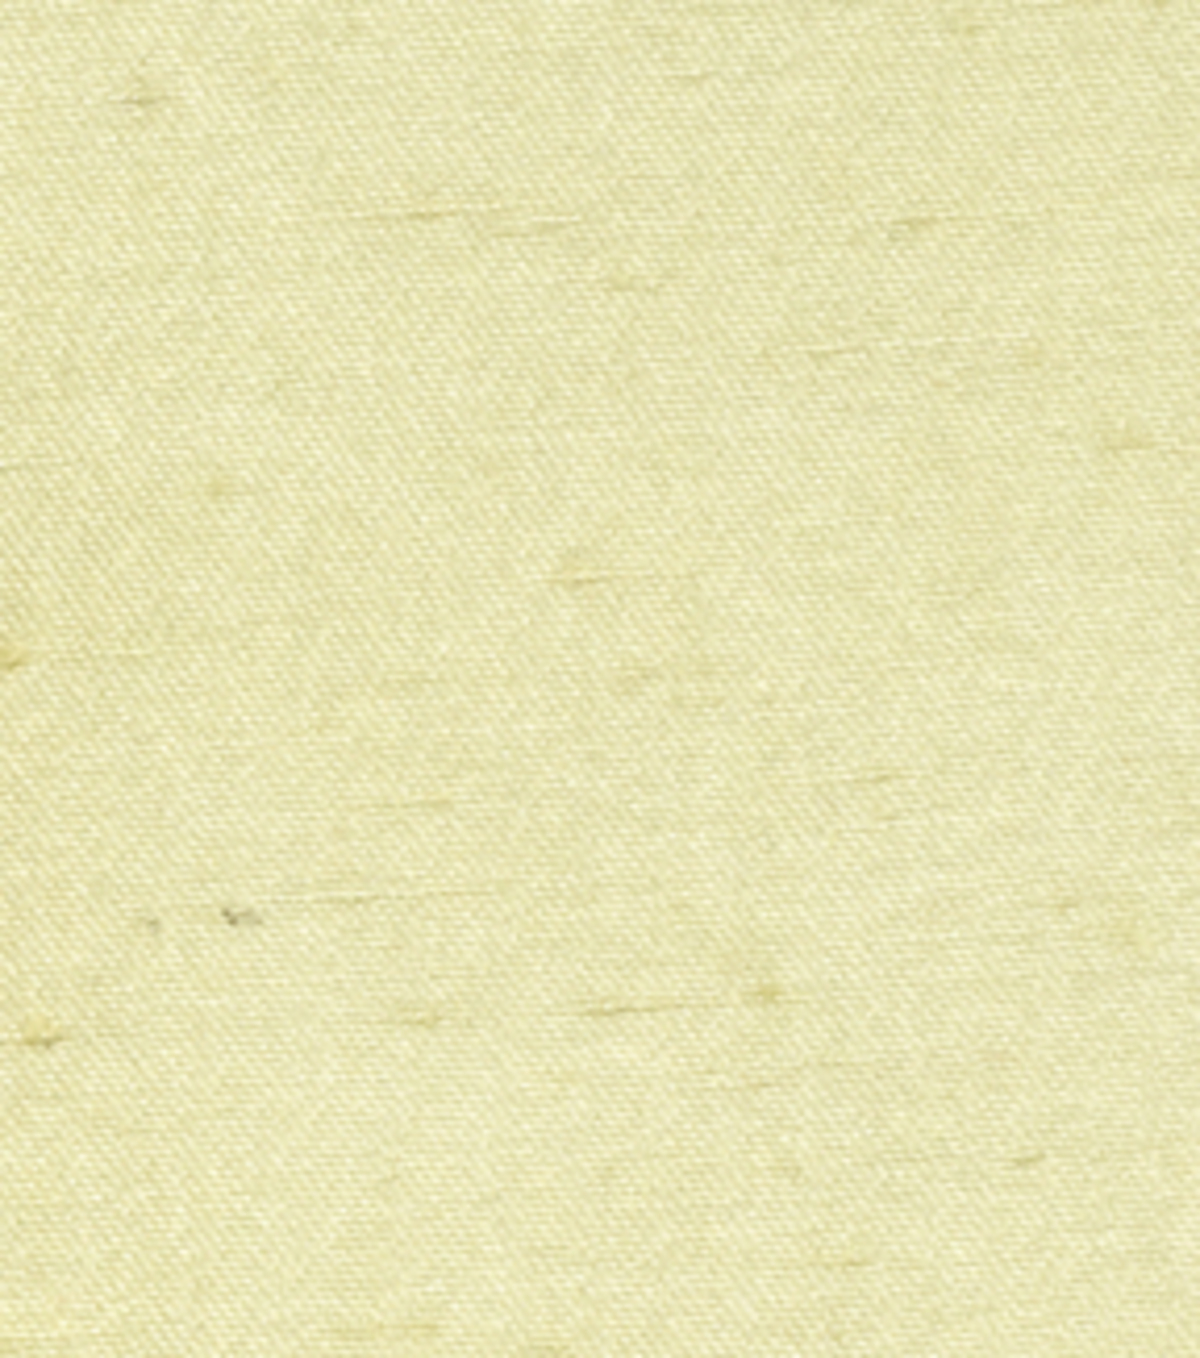 Home Decor 8\u0022x8\u0022 Fabric Swatch-Signature Series Antique Satin Sprout